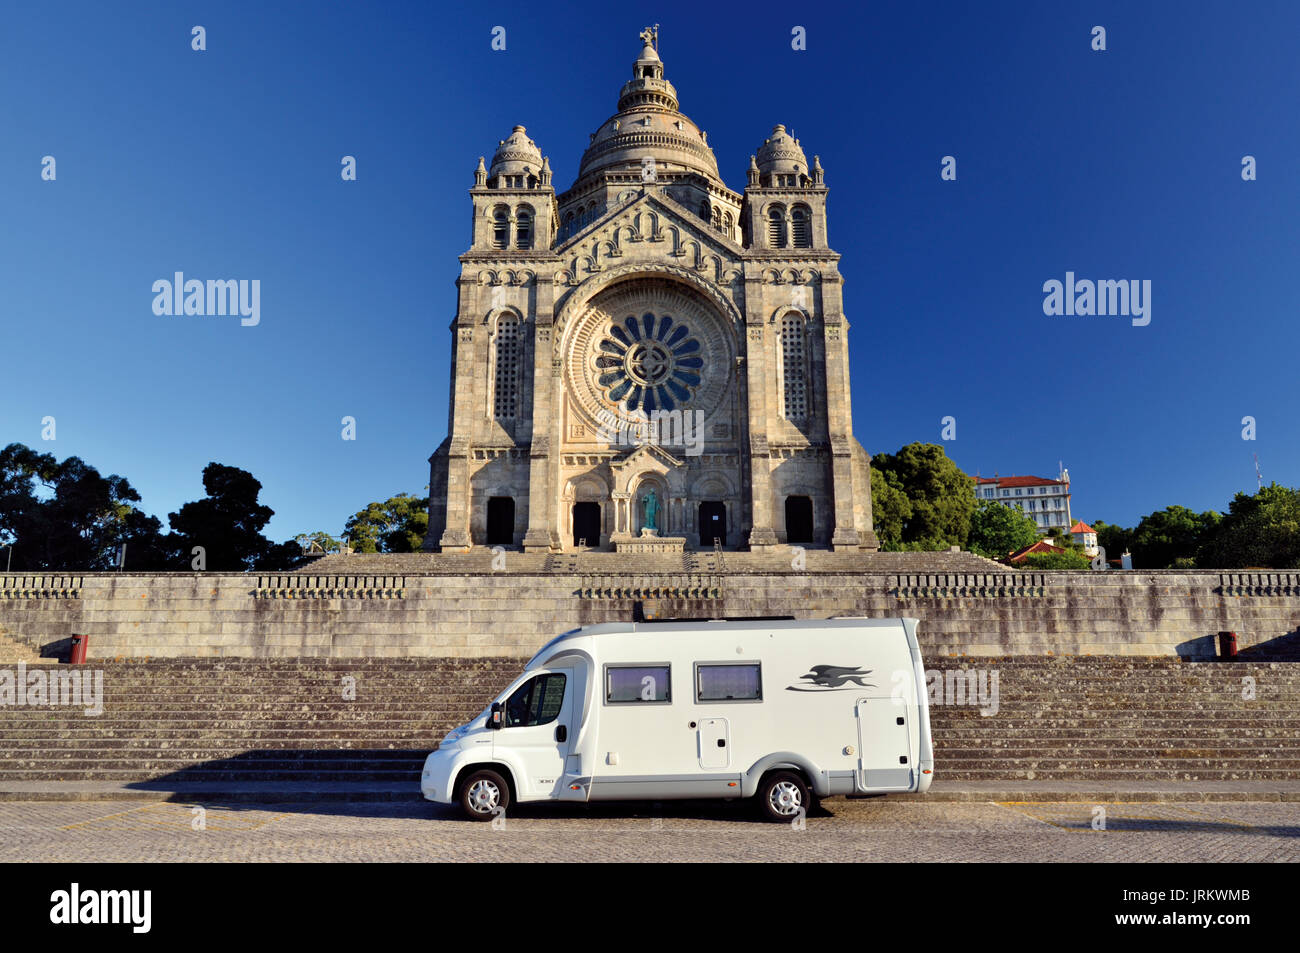 Portugal: Motorhome parking in front of famous Sanctuary Santa Luzia - Stock Image